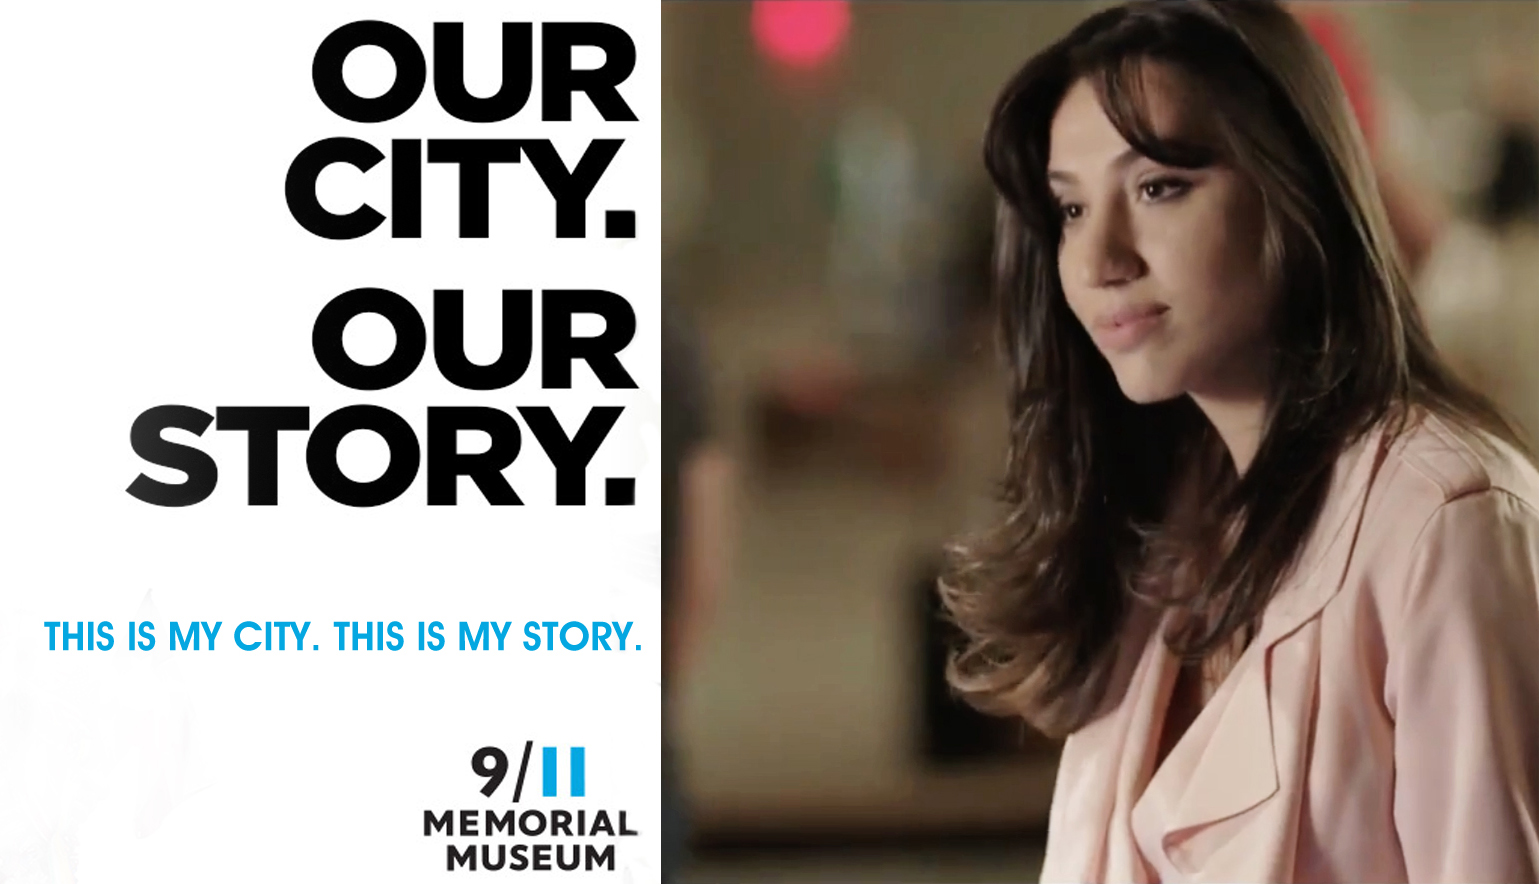 Julie Asriyan Our City. Our Story. Campaign for 9/11 Memorial & Museum